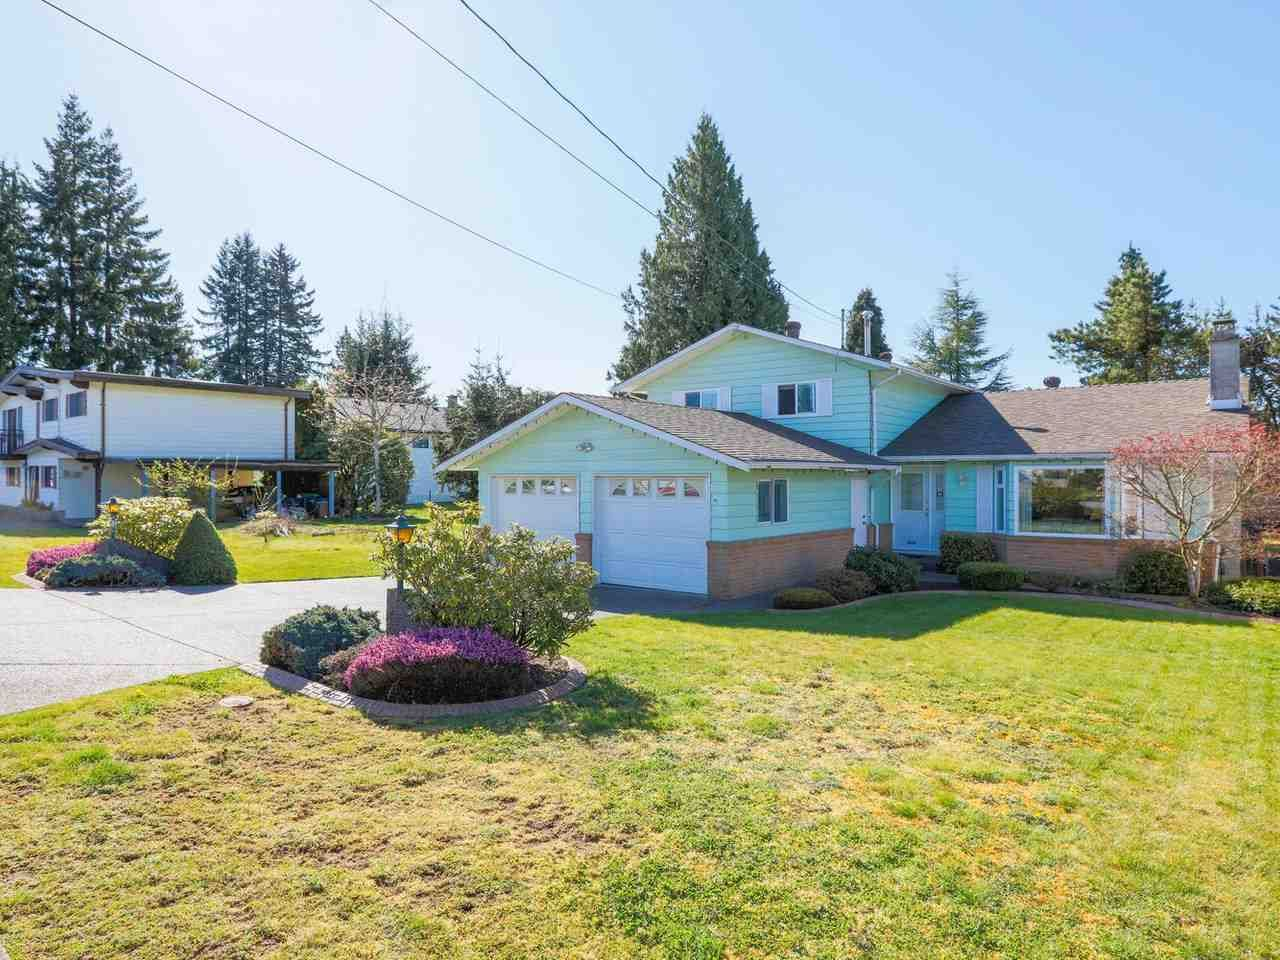 Photo 2: Photos: 1422 GROVER Avenue in Coquitlam: Central Coquitlam House for sale : MLS®# R2568207